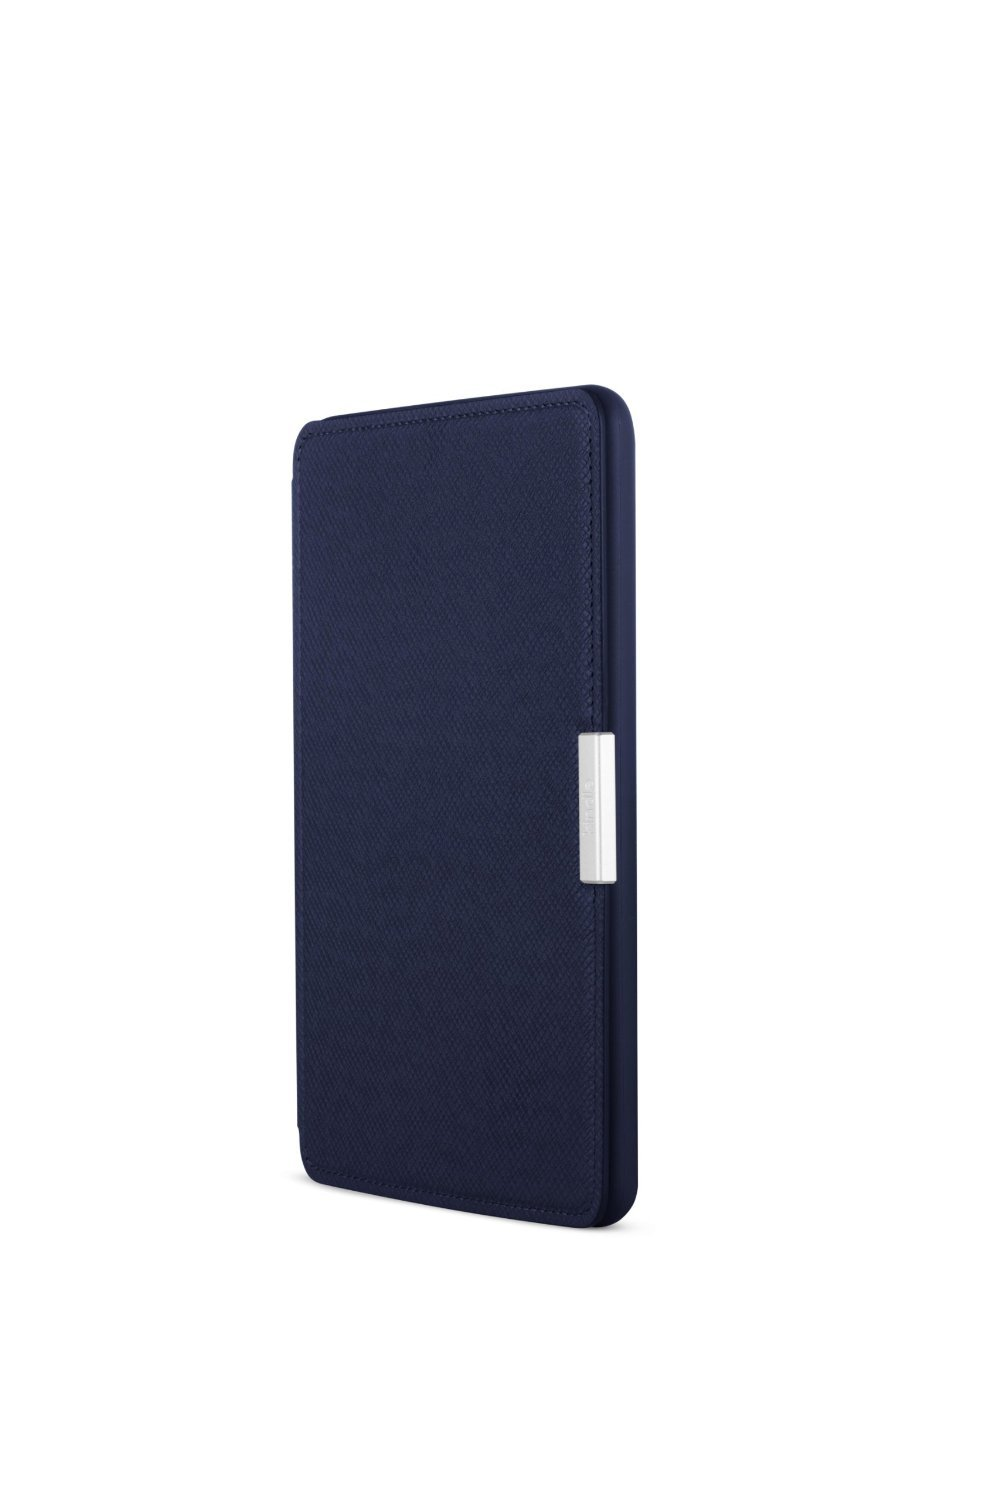 Чехол Leather Cover для Amazon Kindle Paperwhite Ink Blue (Темно-синий). Фото N6